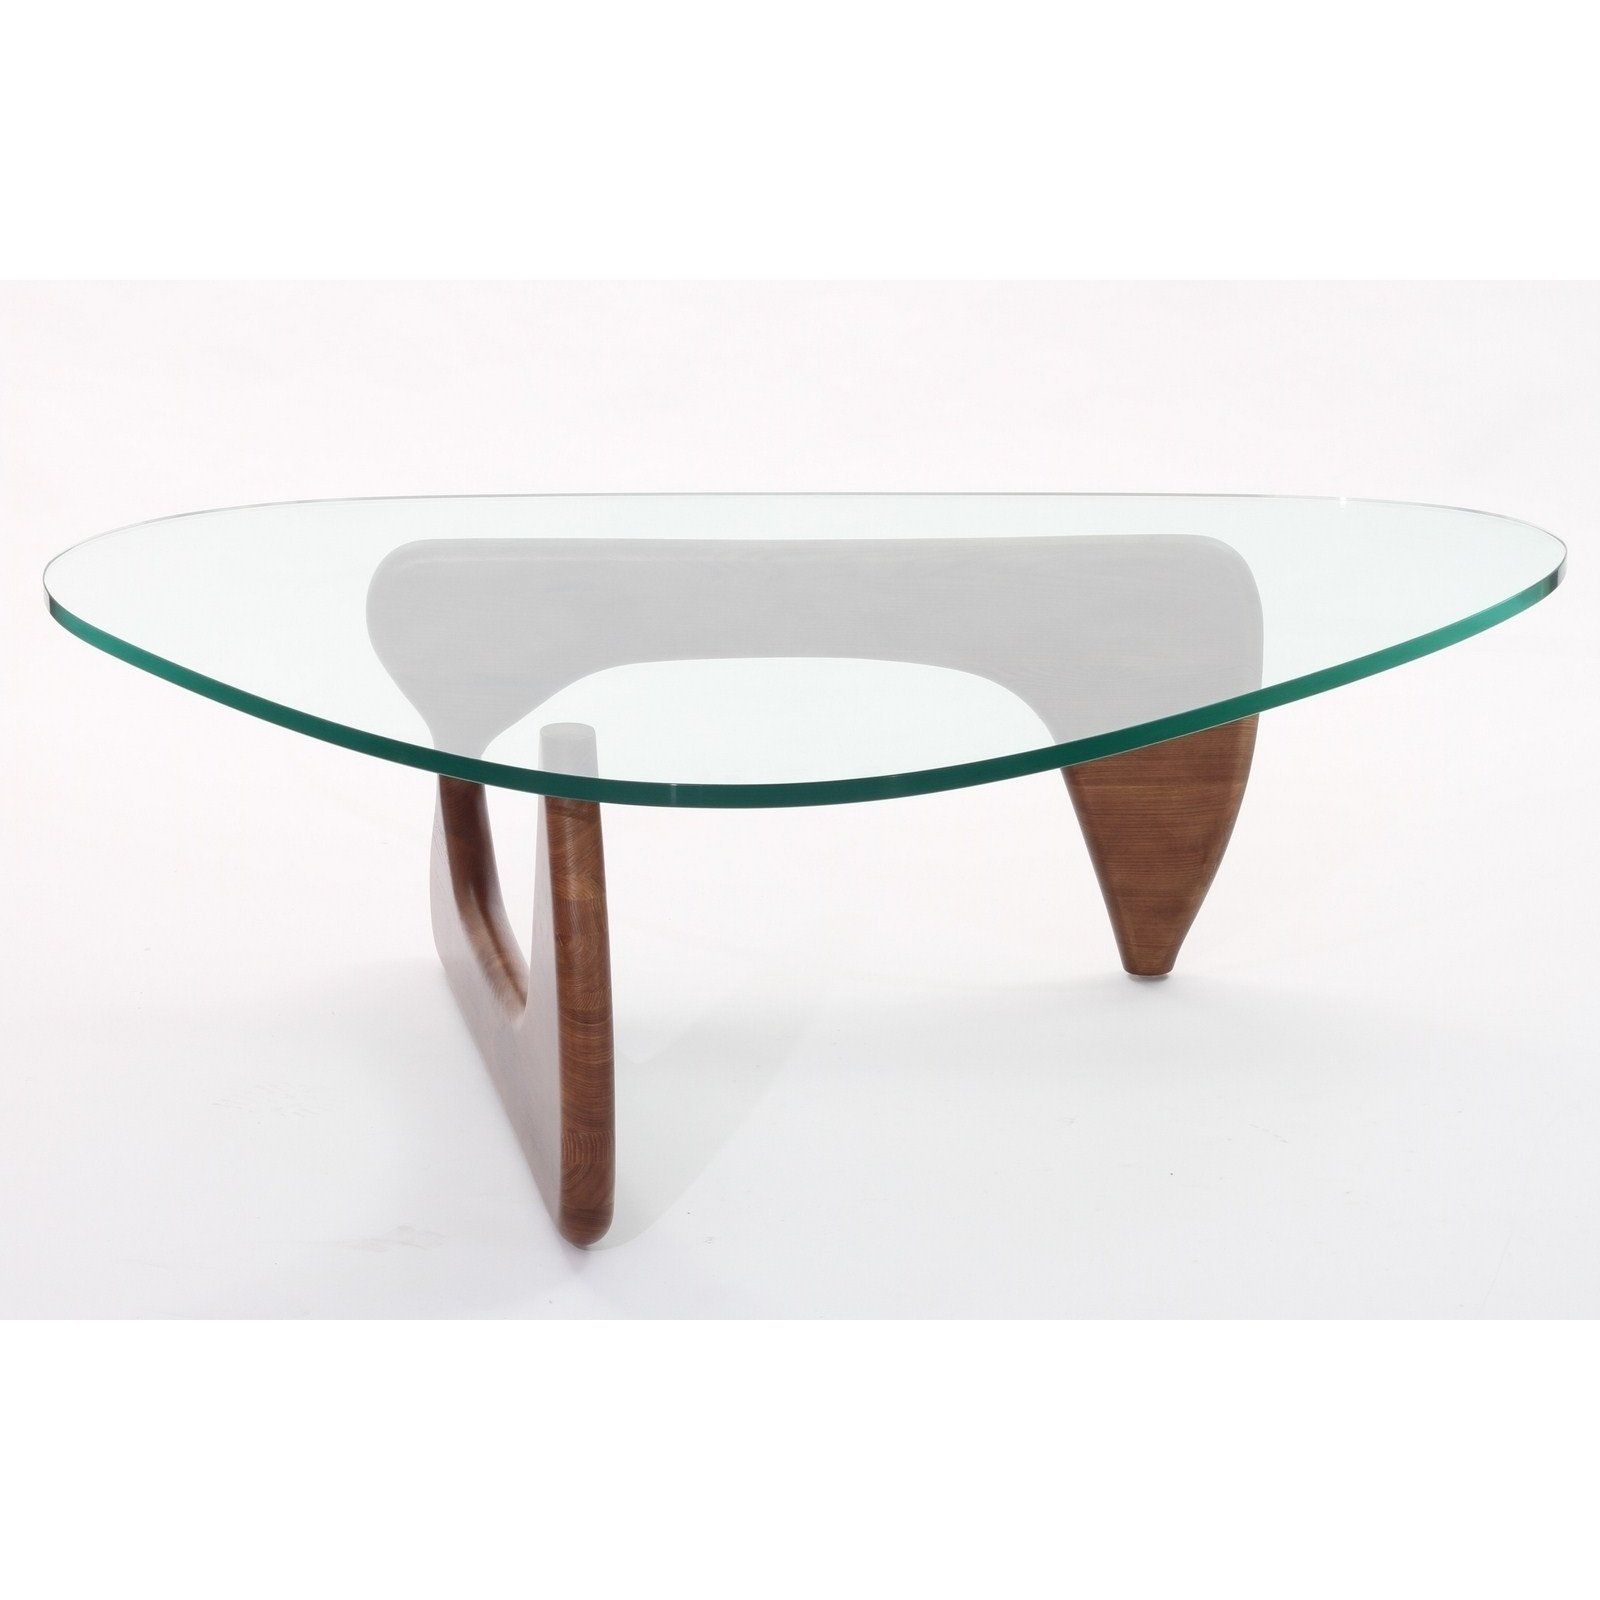 Have To Have It Modway Triangle Light Walnut Glass Top Coffee Table 416 99 Triangle Coffee Table Glass Top Coffee Table Coffee Table [ jpg ]